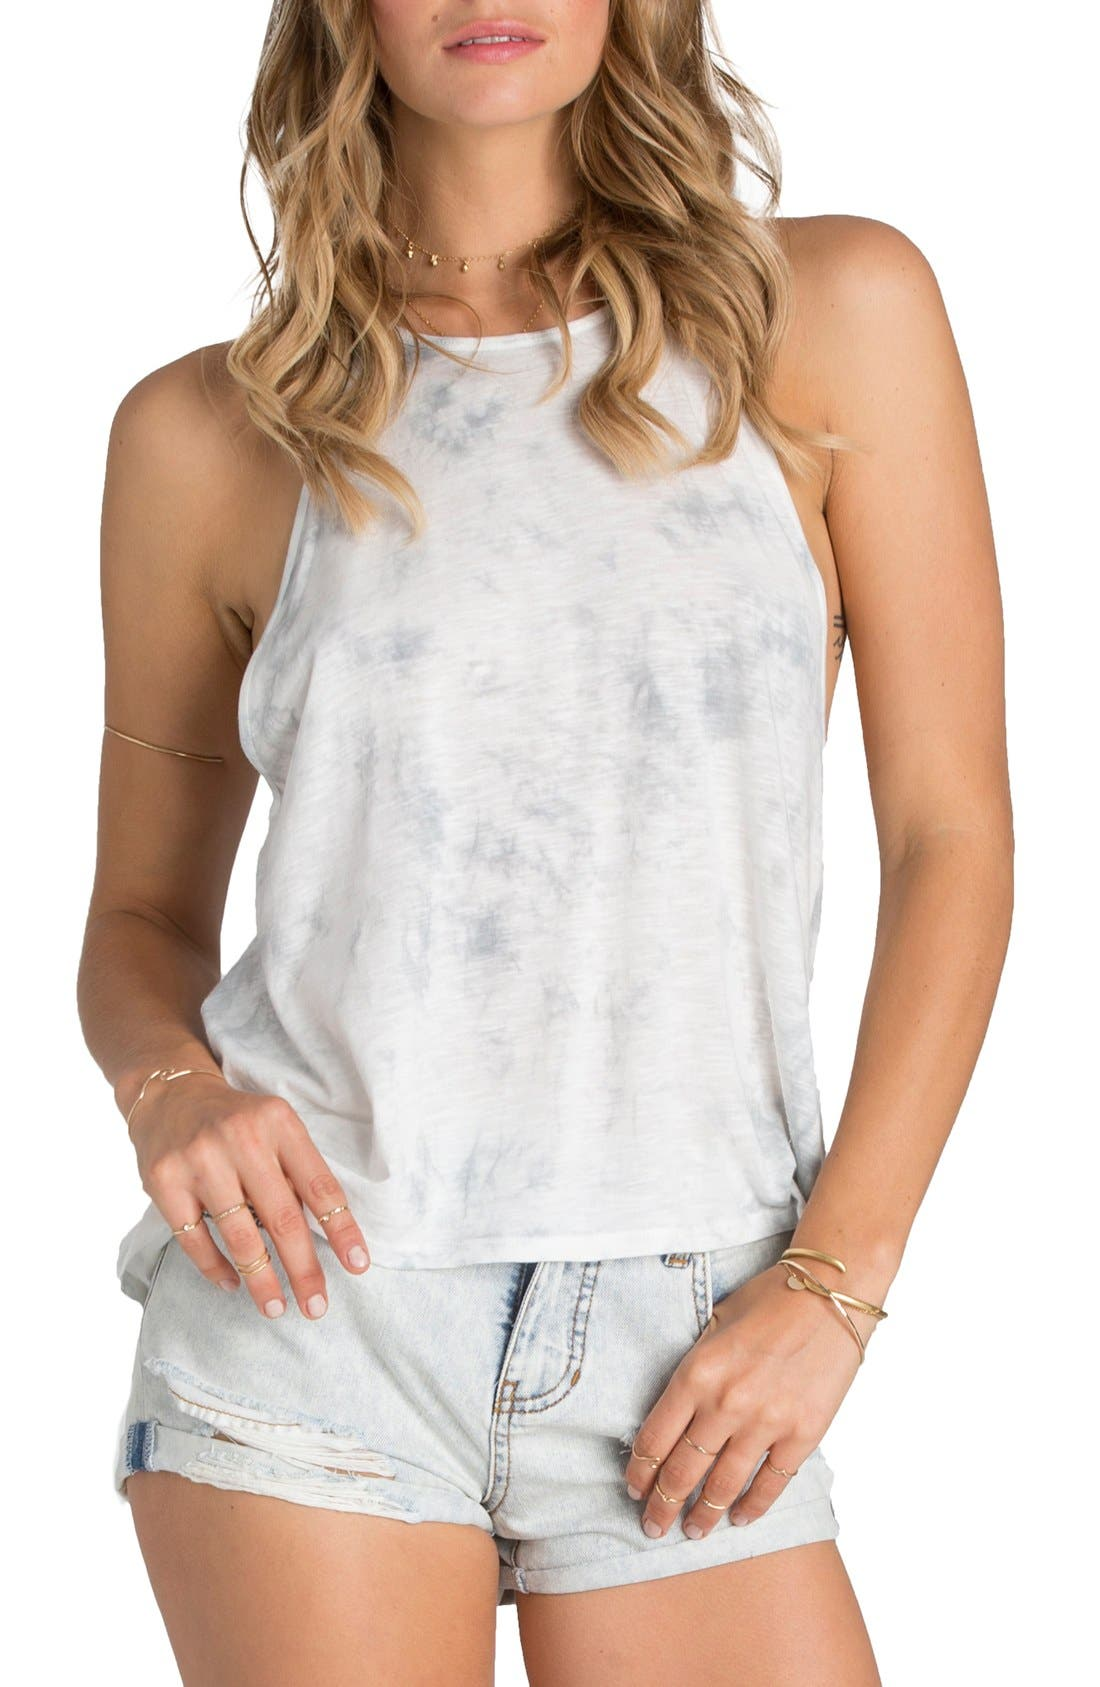 Alternate Image 1 Selected - Billabong 'To the Point' Racerback Tank